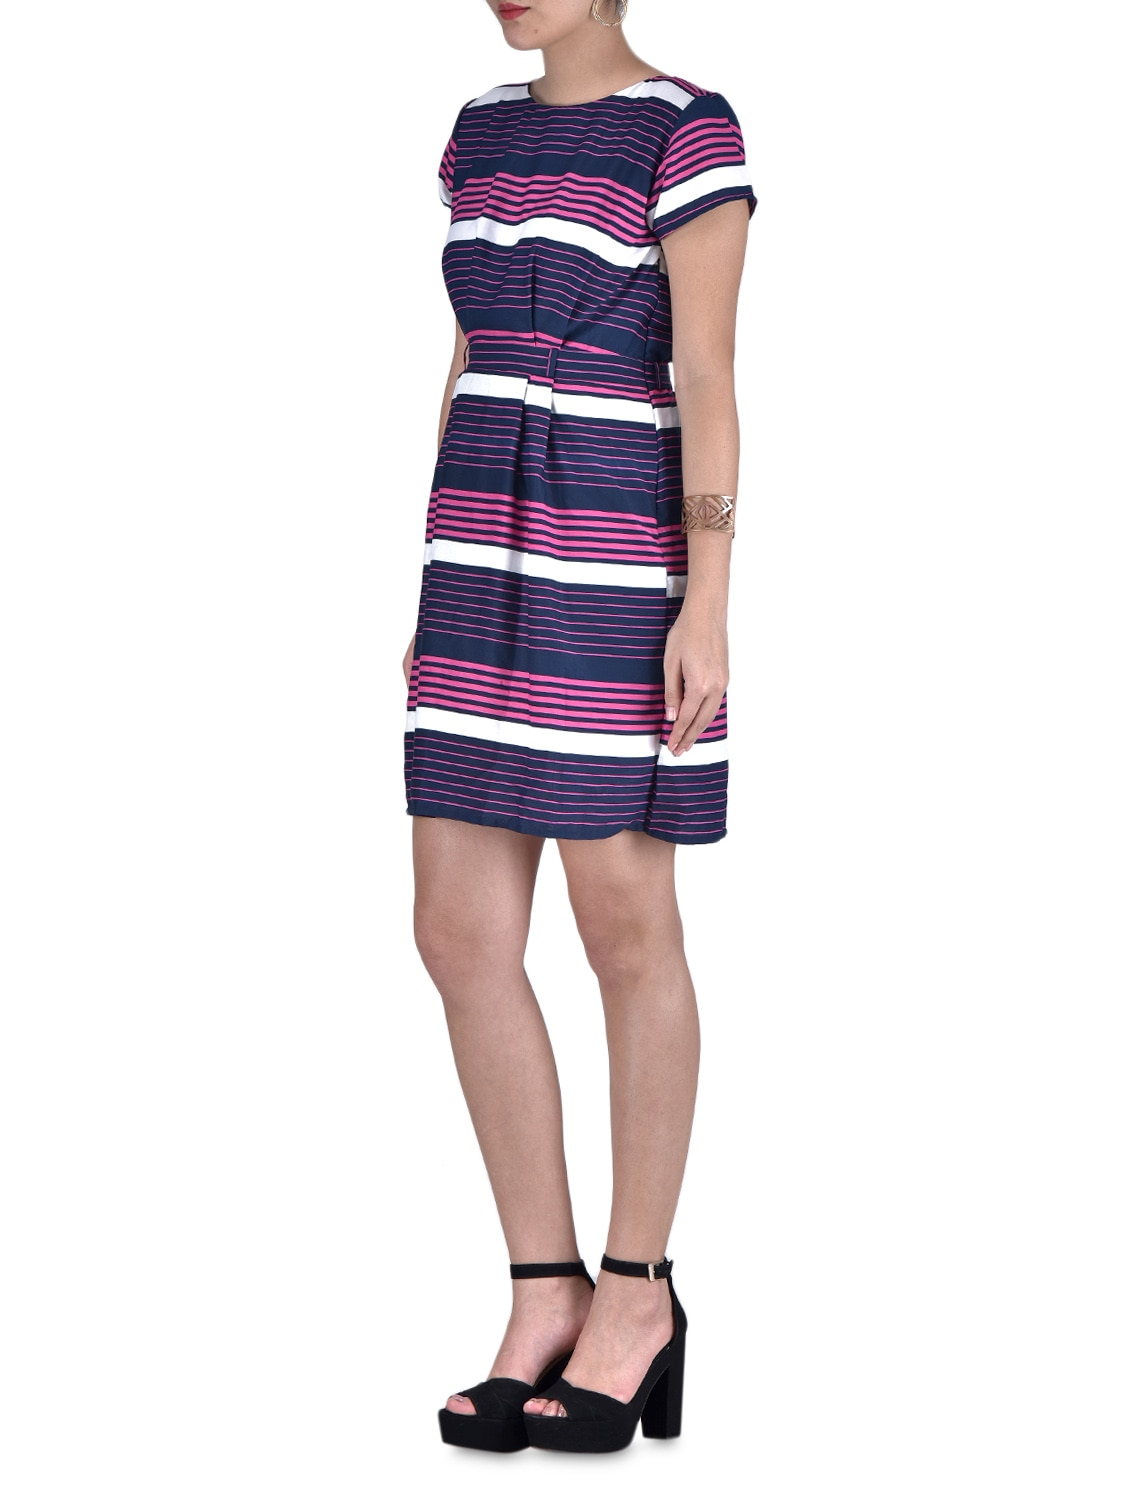 5d30f2e47644 Buy Purple Printed Party Wear Dress by Mayra - Online shopping for Dresses  in India